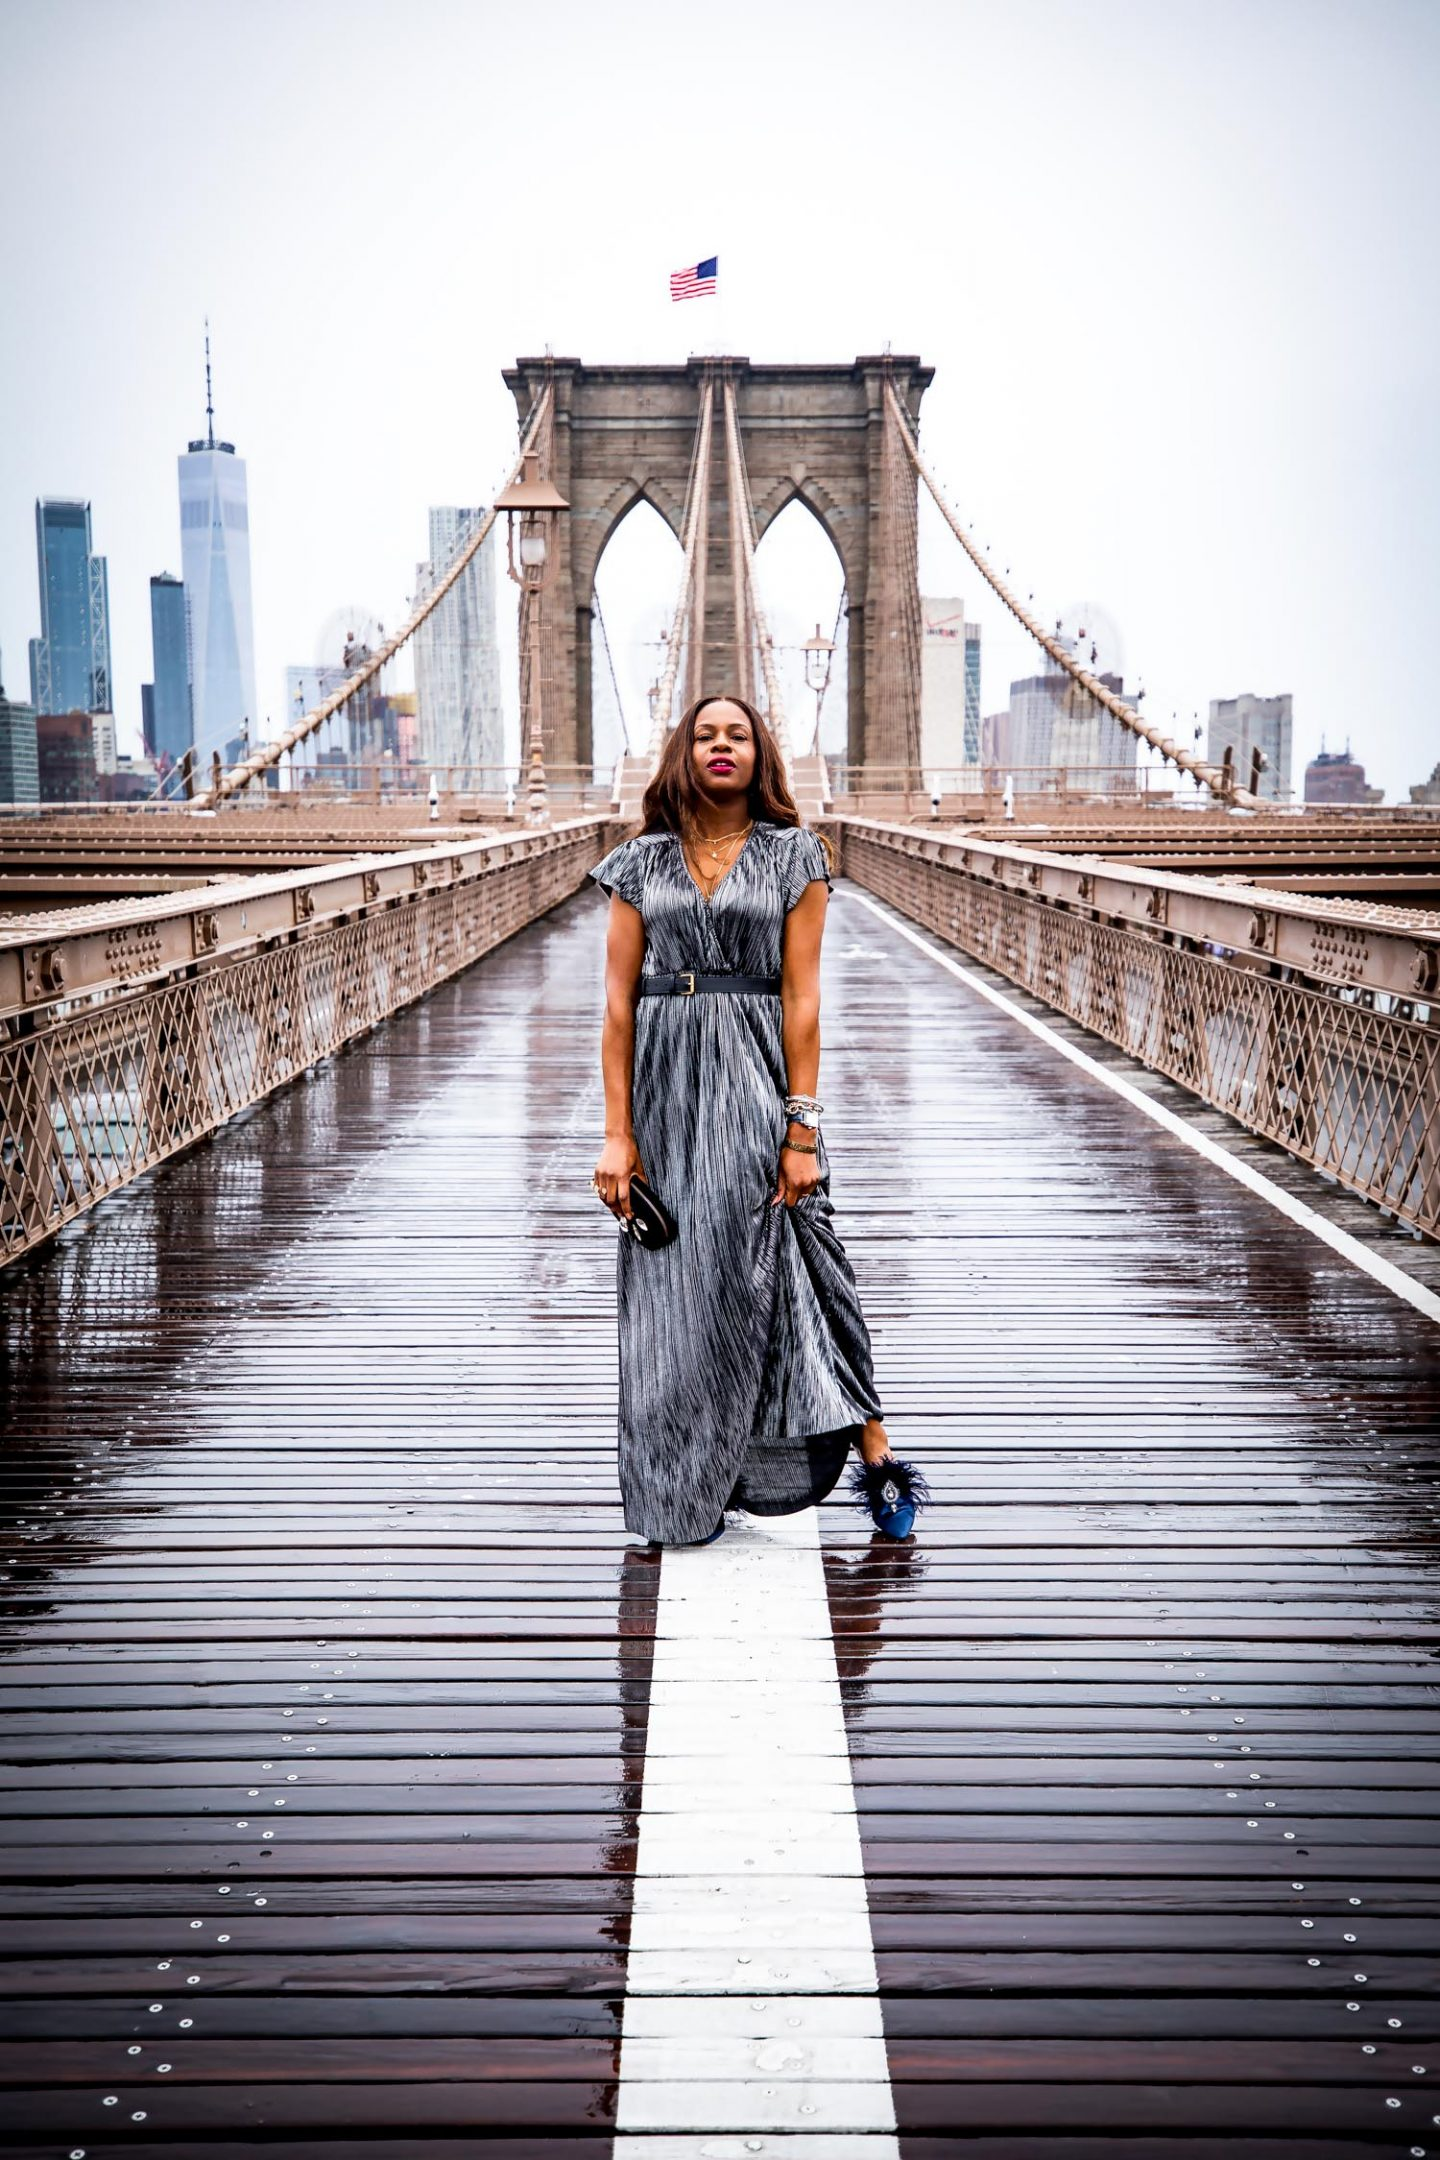 Atlanta blogger Monica Awe-Etuk explains what it takes to run a successful blog and 3 tips on how to be a successful blogger. One of Atlanta's most influential bloggers wearing metallic maxi dress by ladyee boutique, gucci belt bag, tory burch mules photographed on the Brooklyn bridge in New York city.